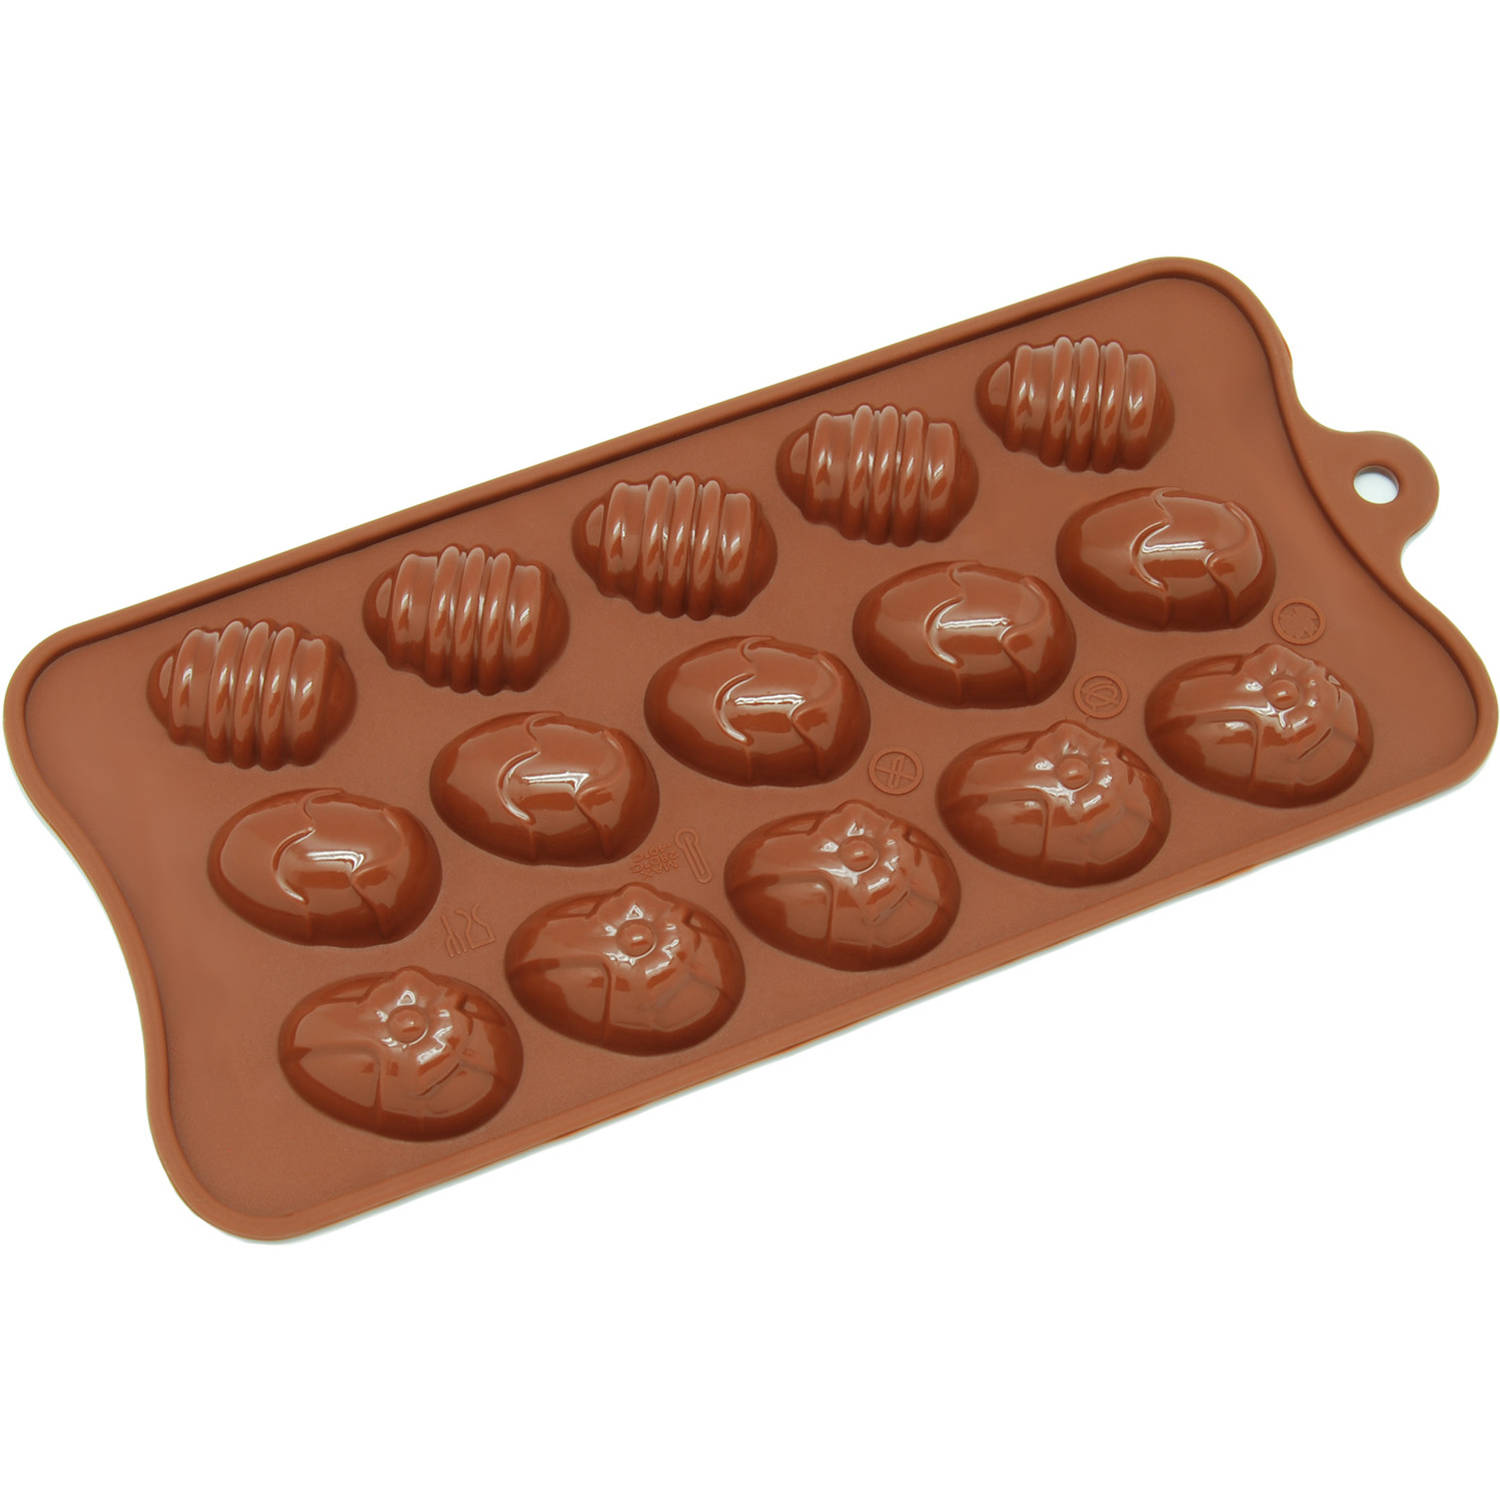 Freshware 15-Cavity Easter Egg Silicone Mold for Chocolate, Candy and Gummy, CB-605BR